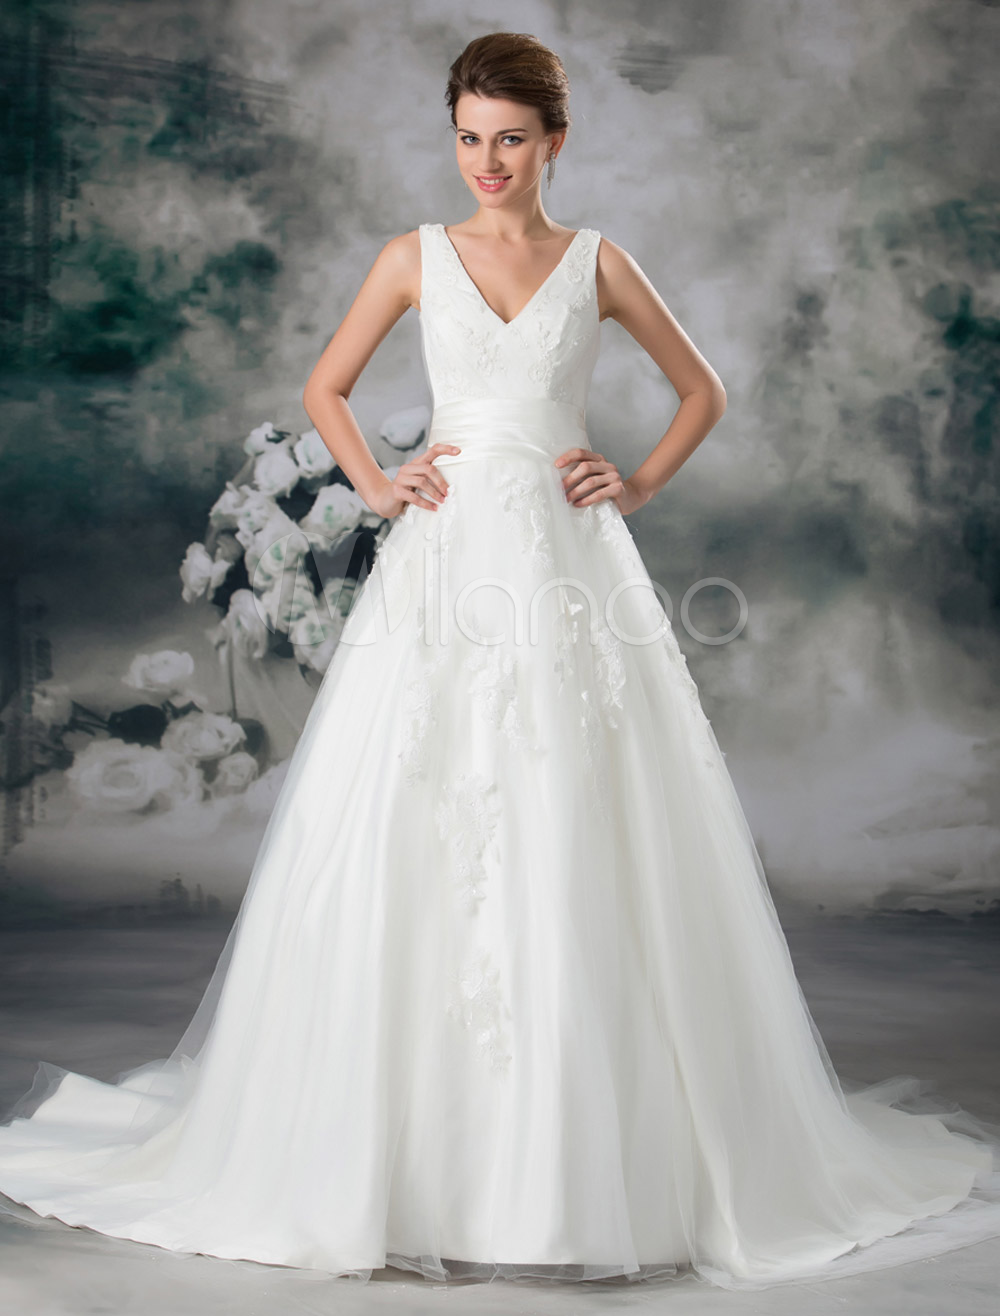 Classic Ivory Ball Gown V-Neck Beading Tulle Bridal Wedding Gown with Off-The-Shoulder Design